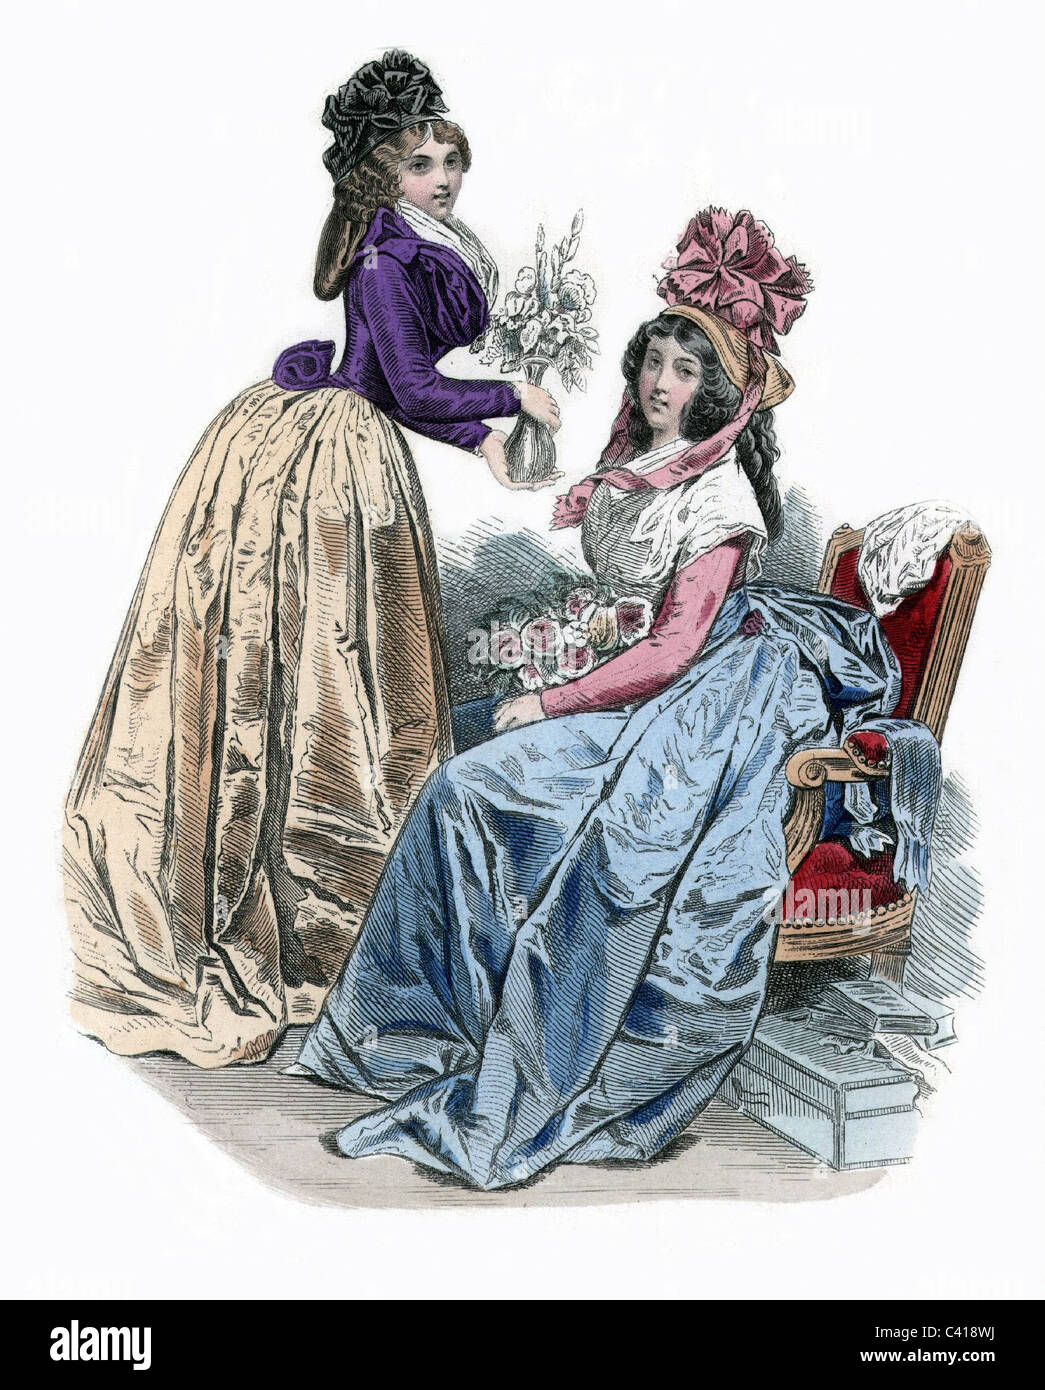 fashion ladie s fashion 18th century paris 1790 stock photo fashion ladie s fashion 18th century paris 1790 coloured engraving 19th century historic historical women woma